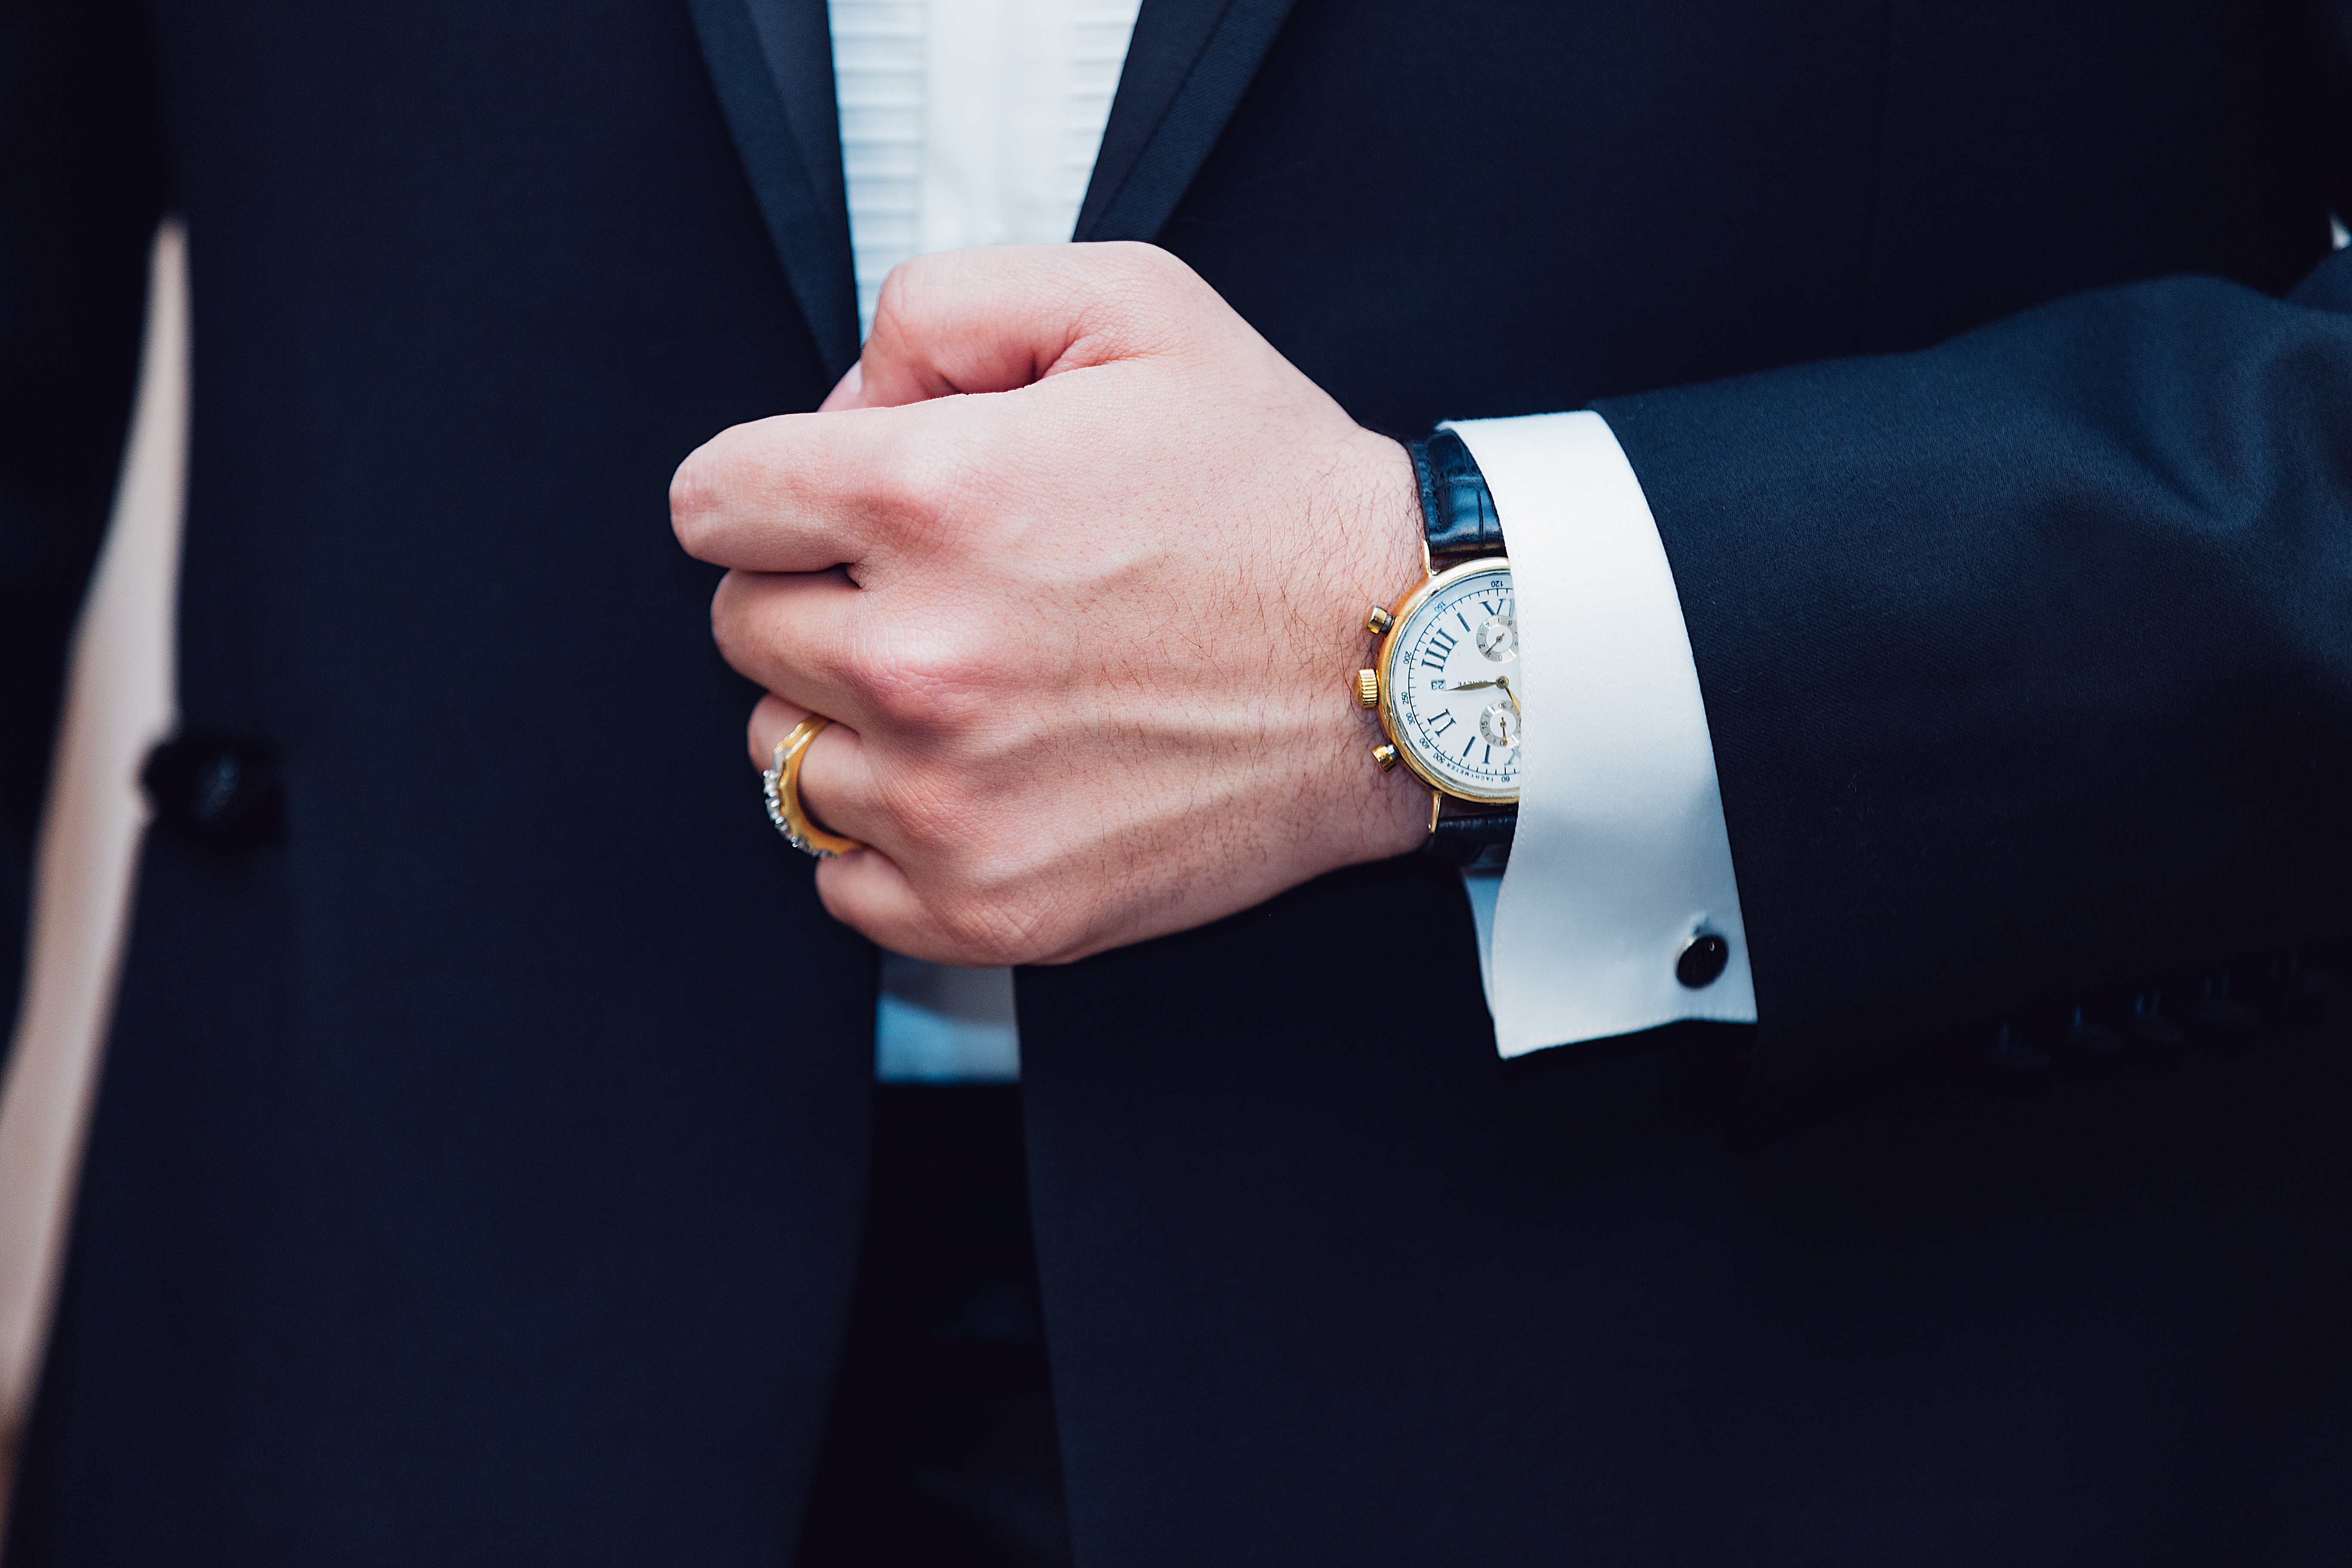 Yes, the smartphone tells the time. But successful men wear a watch.